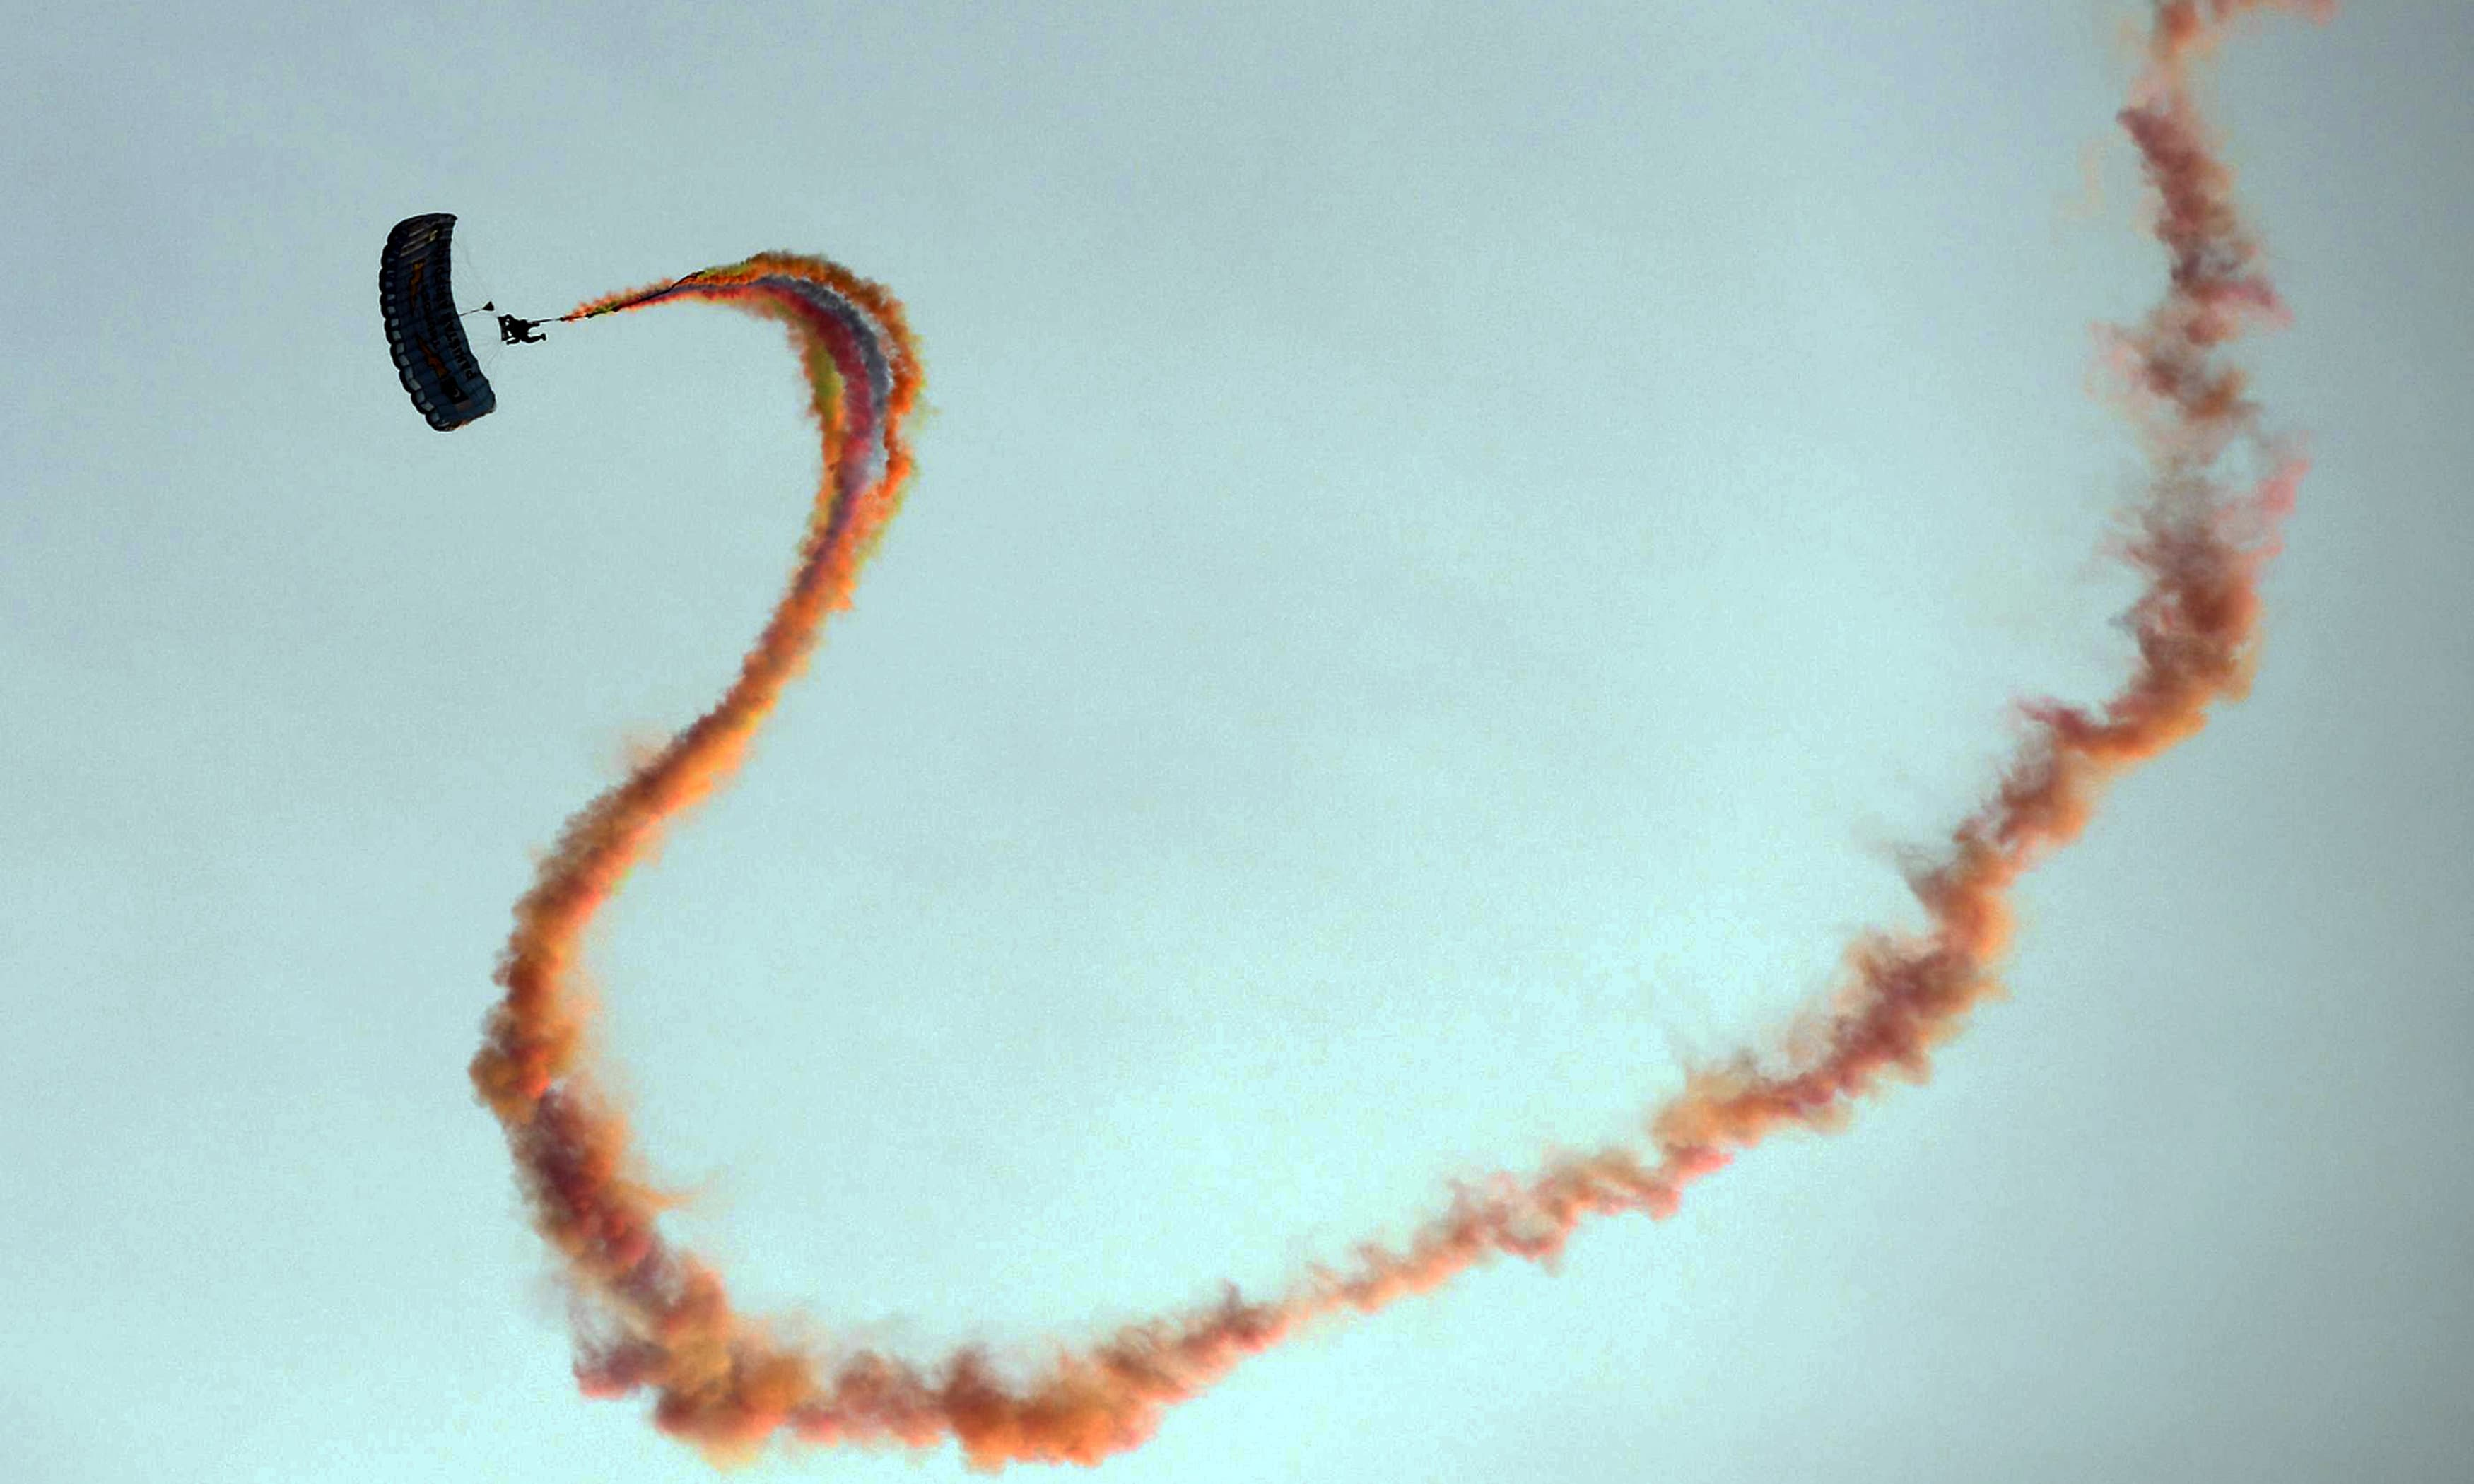 A paratrooper descends on his parachute. —AFP